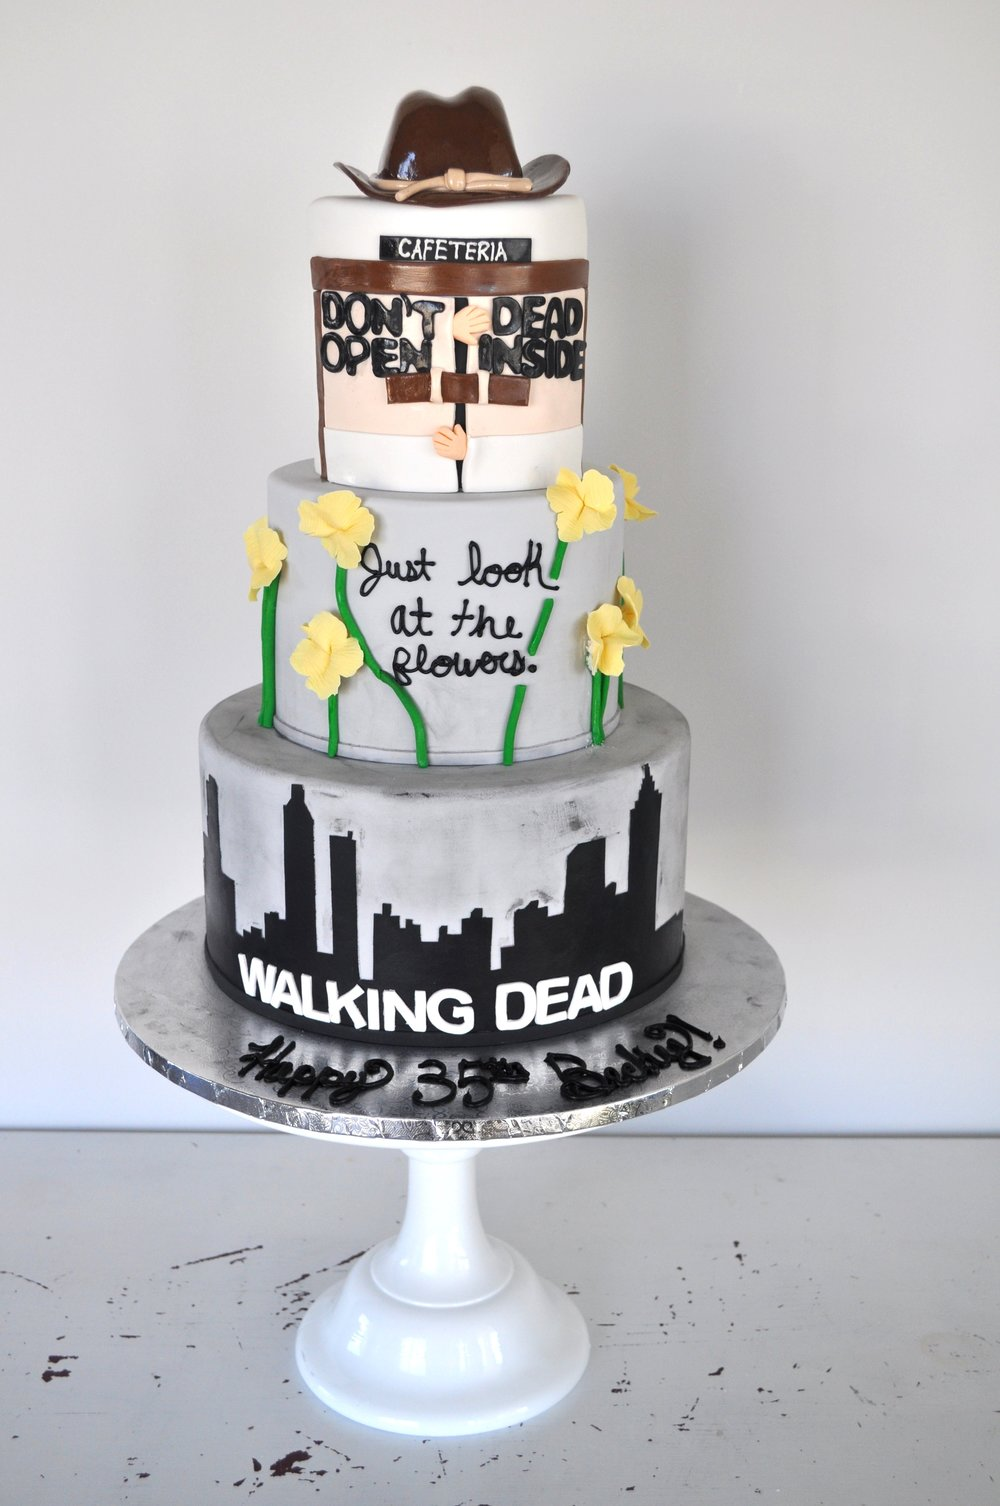 3 Tier Walking Dead Cake.jpg